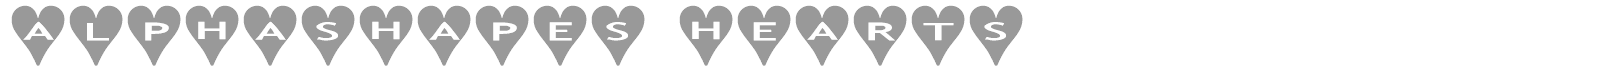 Font AlphaShapes hearts